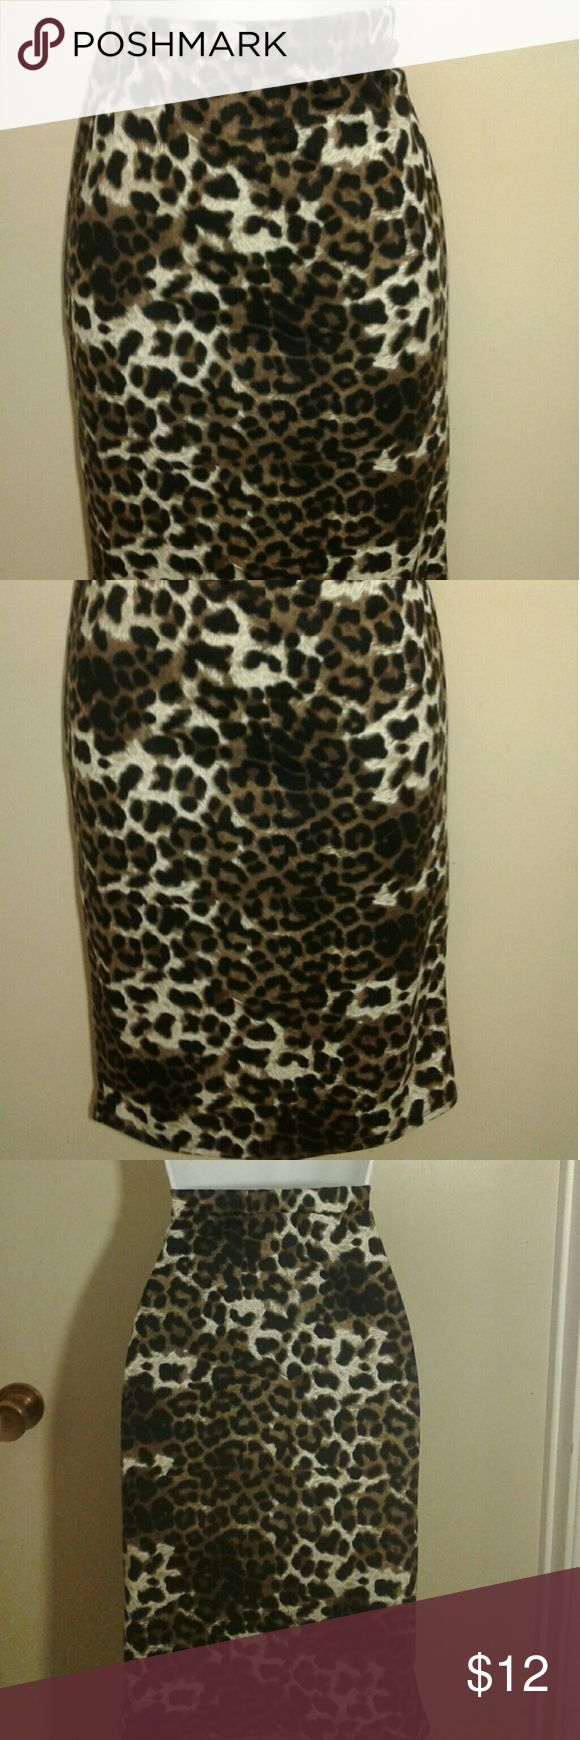 Leopard pencil skirt ❤❤❤ 95% polyester  5%spandex  Cute pencil skirt. Worn once for photo. Waist 24 to28 inches. Moa Skirts